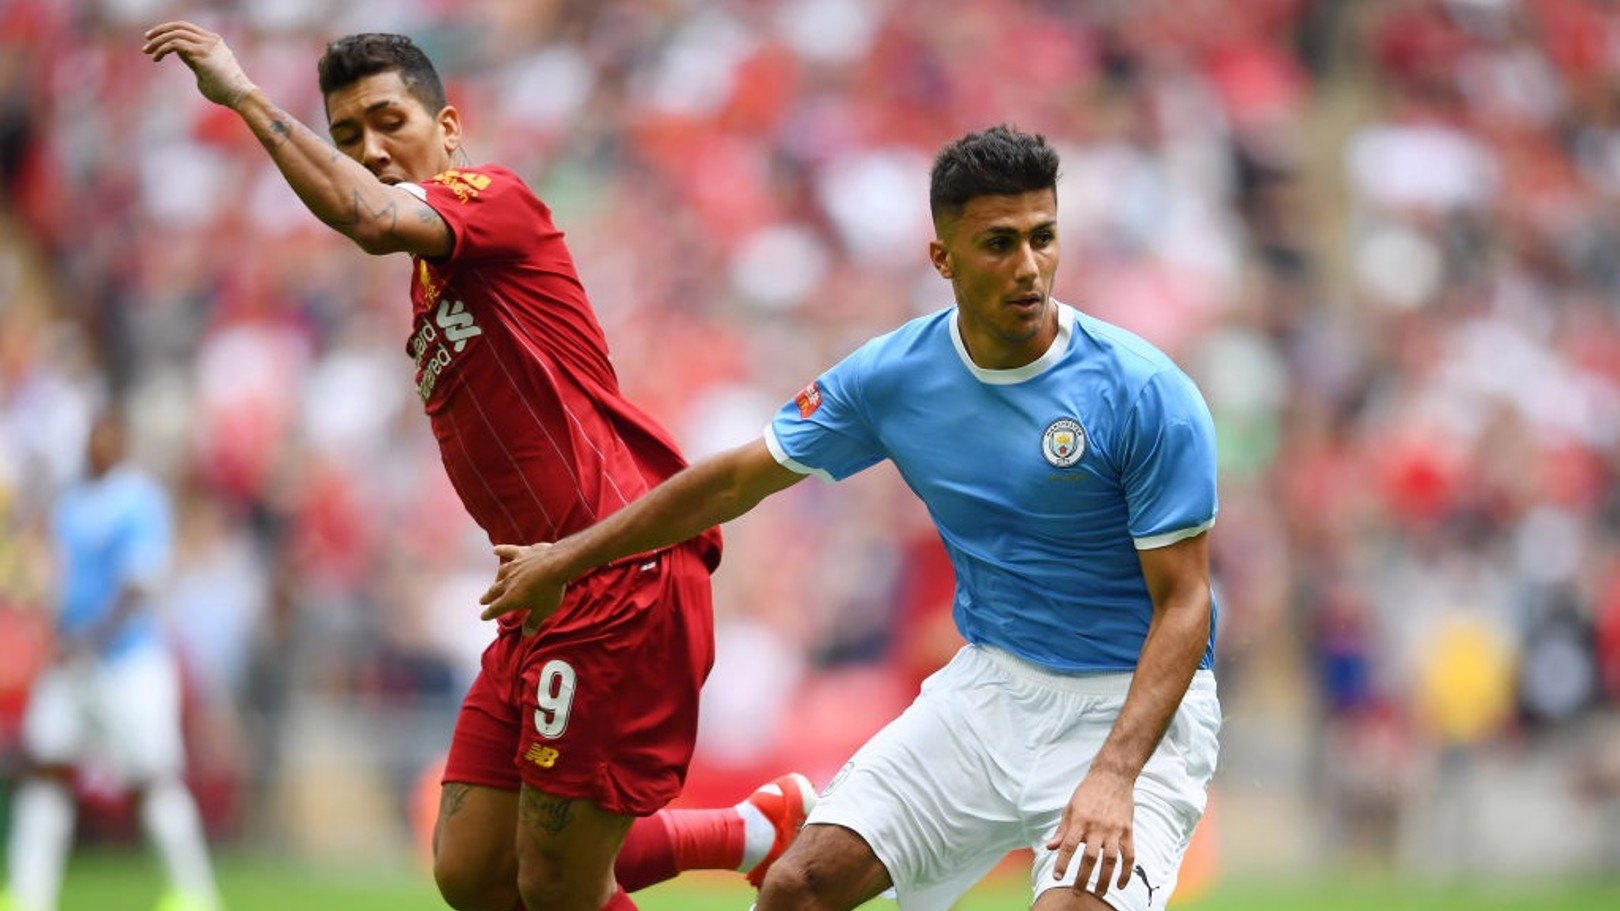 NEW KID ON THE BLOCK: Rodri occupying the base of City's midfield.